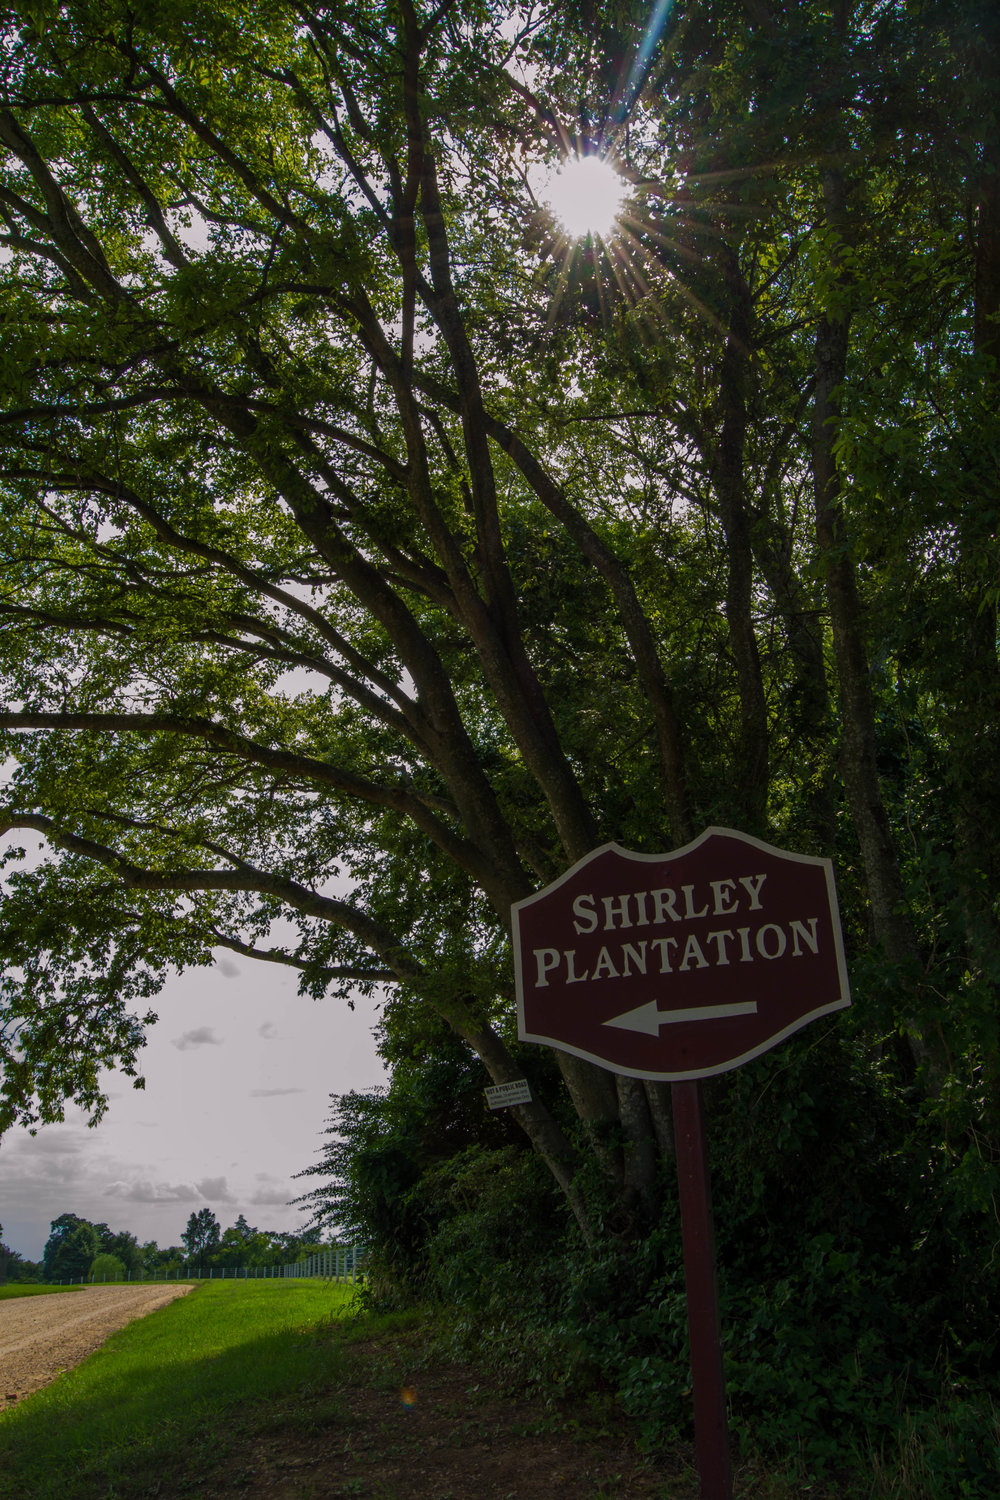 Welcome to Shirley (1 of 1)